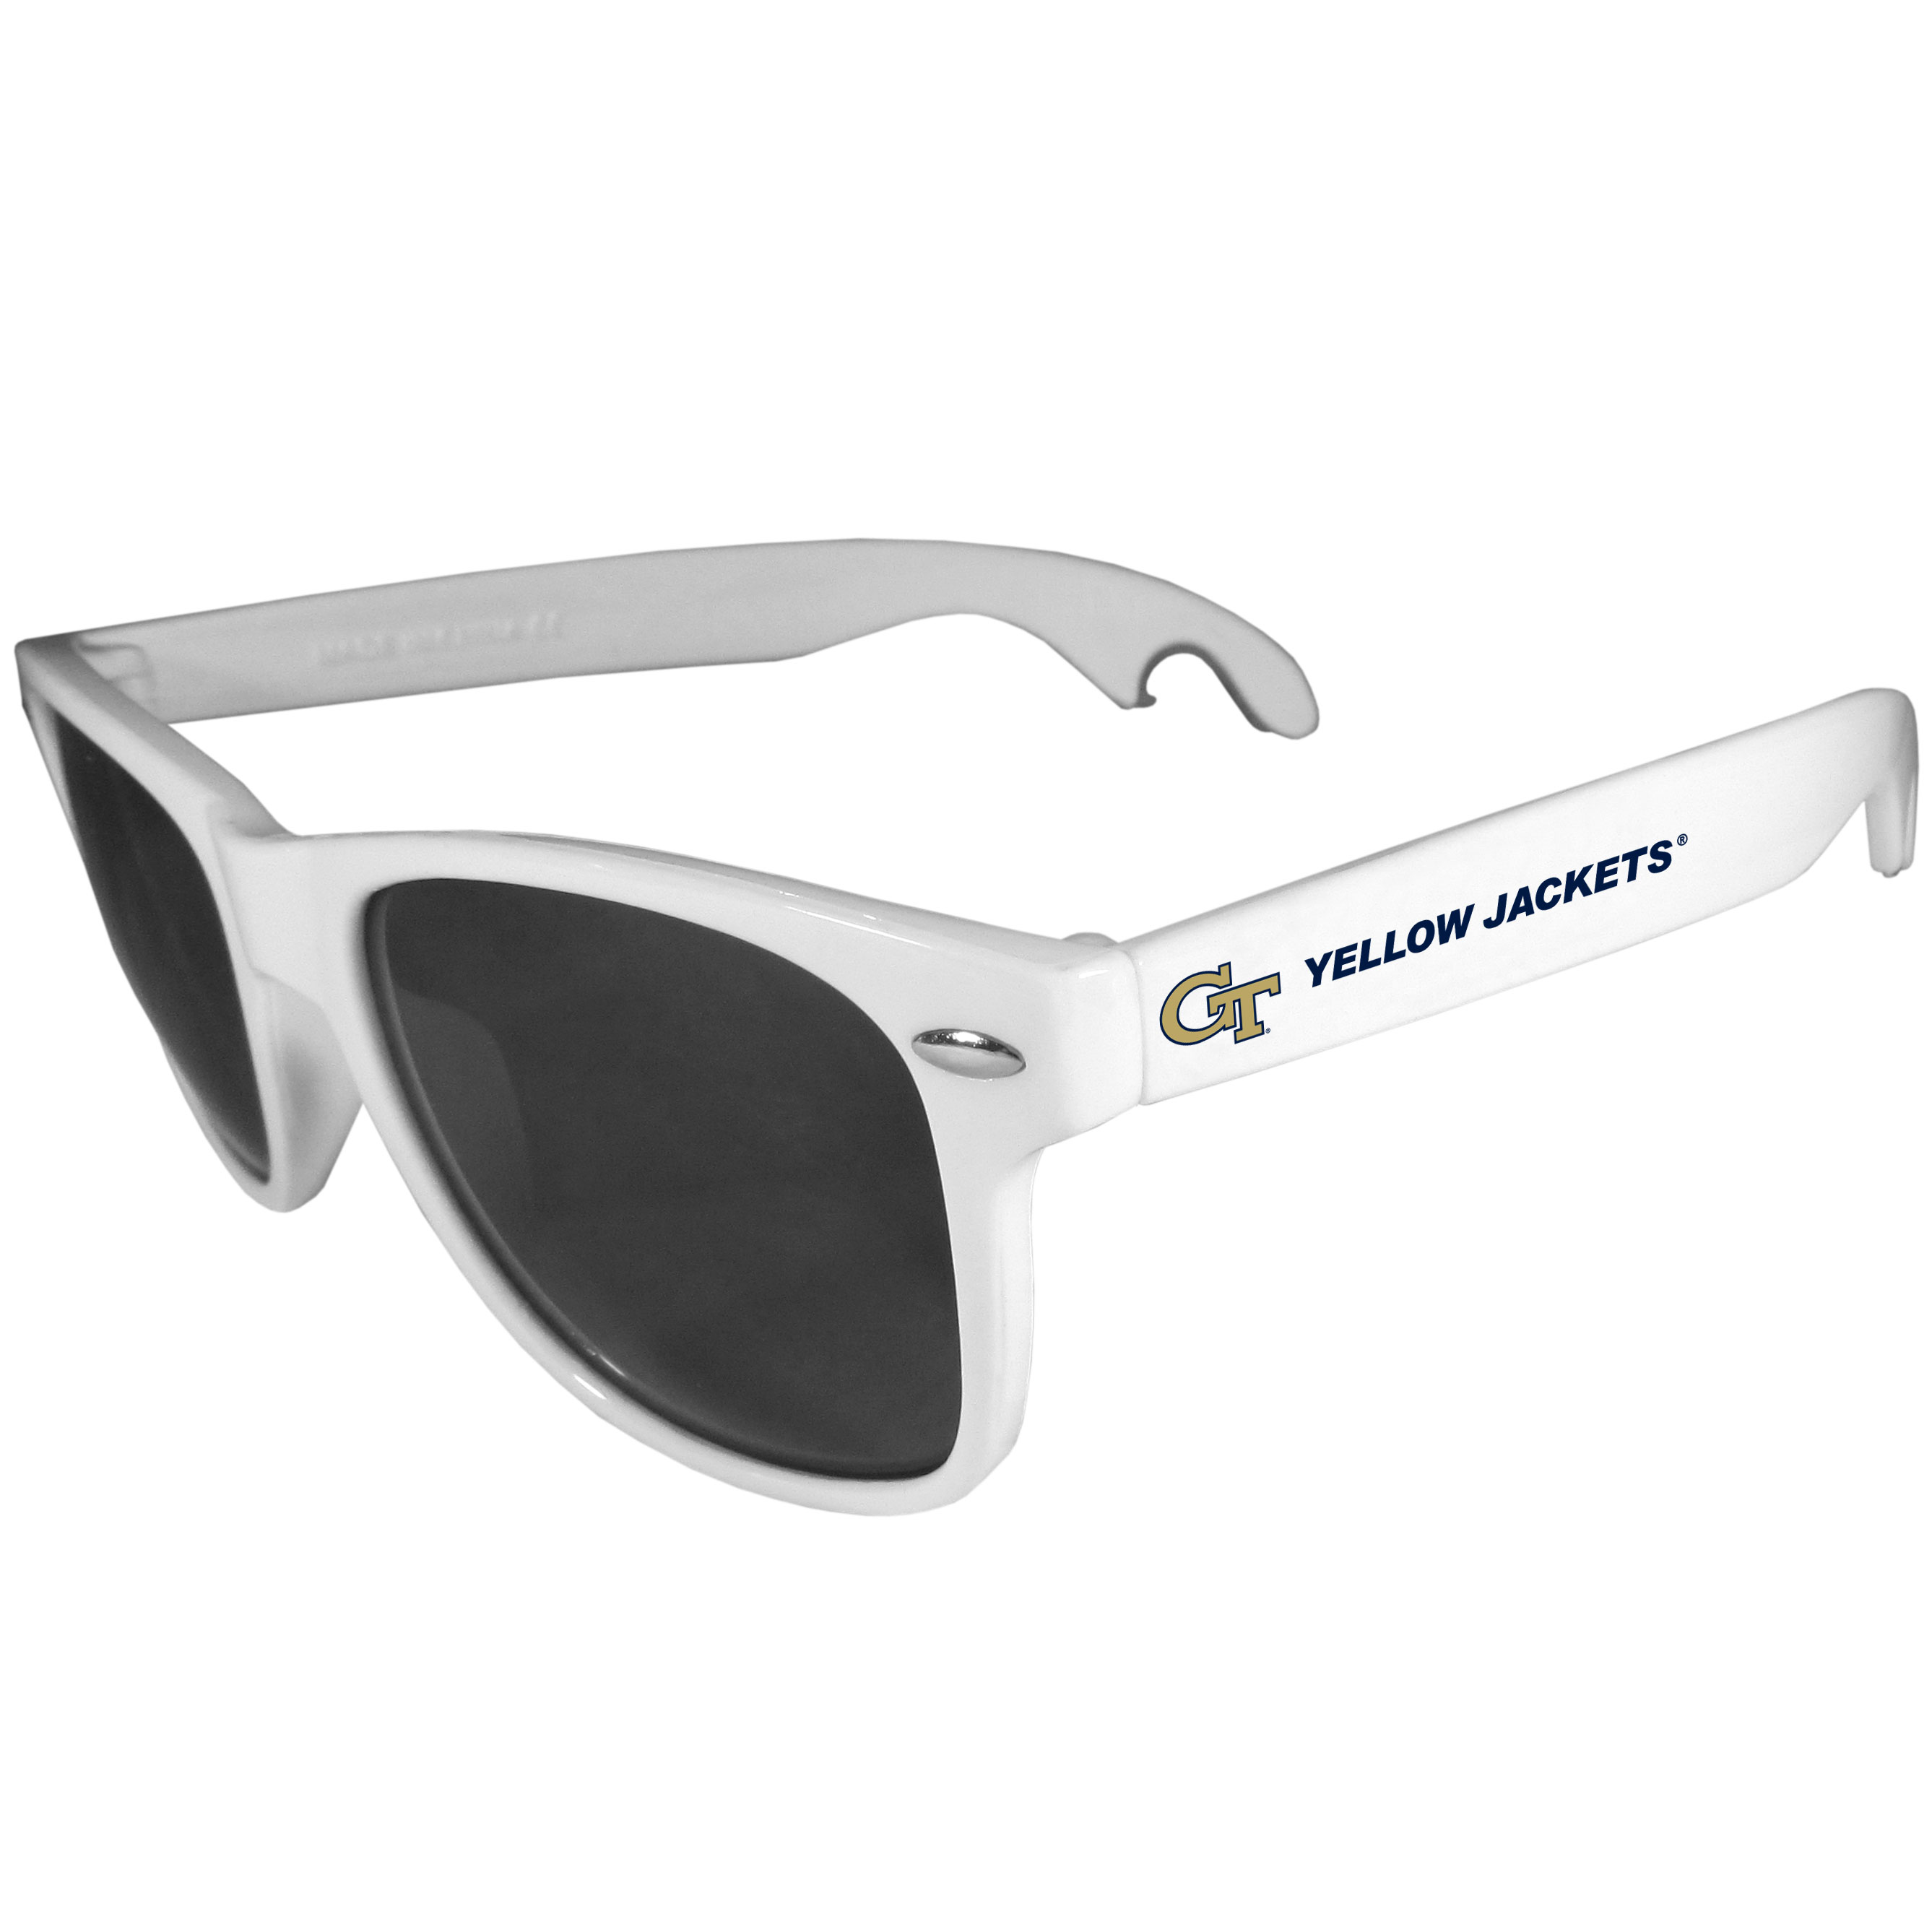 Georgia Tech Yellow Jackets Beachfarer Bottle Opener Sunglasses, White - Seriously, these sunglasses open bottles! Keep the party going with these amazing Georgia Tech Yellow Jackets bottle opener sunglasses. The stylish retro frames feature team designs on the arms and functional bottle openers on the end of the arms. Whether you are at the beach or having a backyard BBQ on game day, these shades will keep your eyes protected with 100% UVA/UVB protection and keep you hydrated with the handy bottle opener arms.